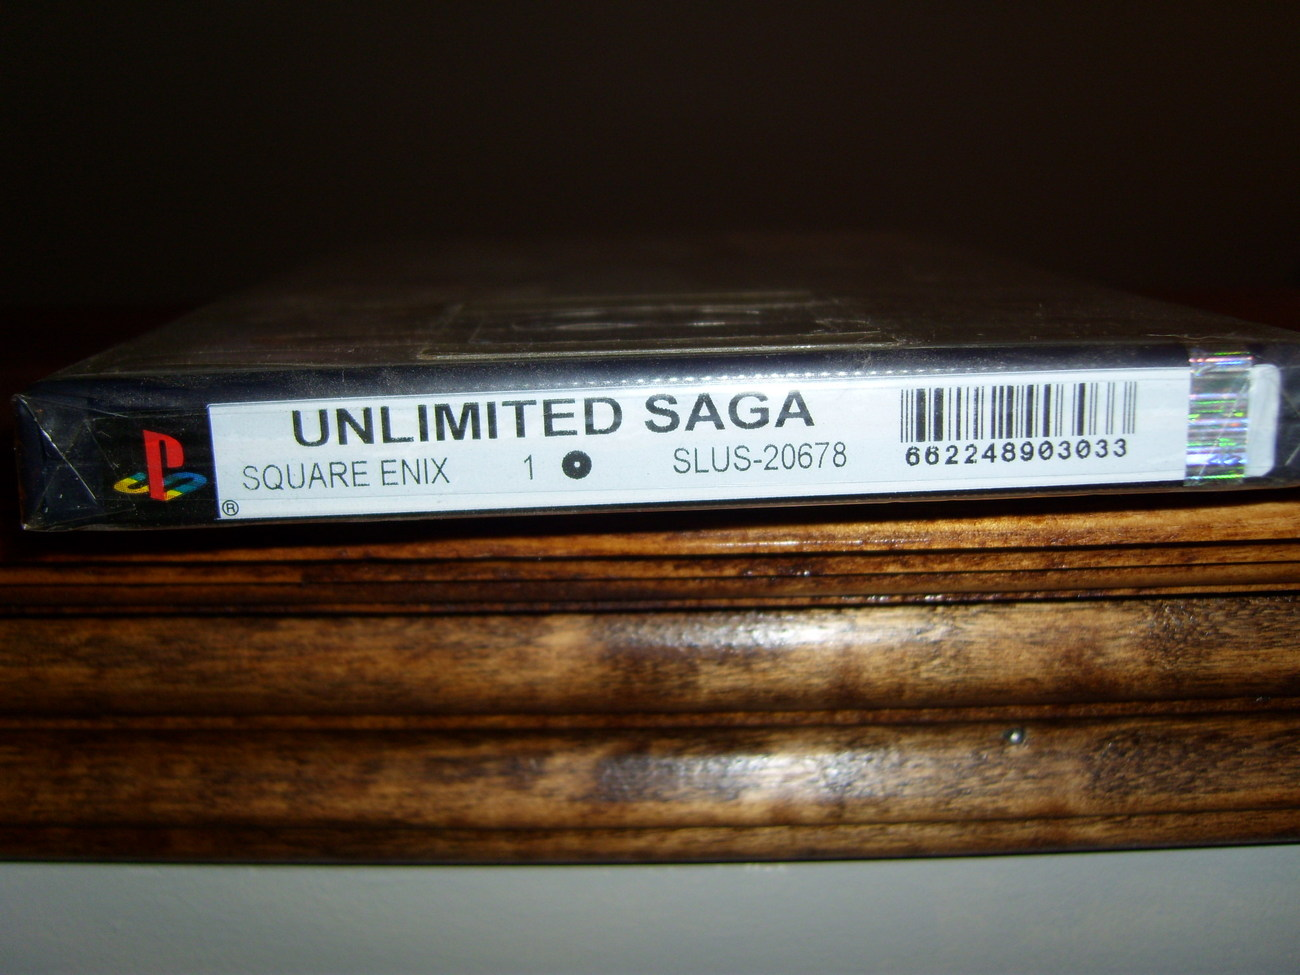 Unlimited Saga Playstation 2 game brand new and sealed!